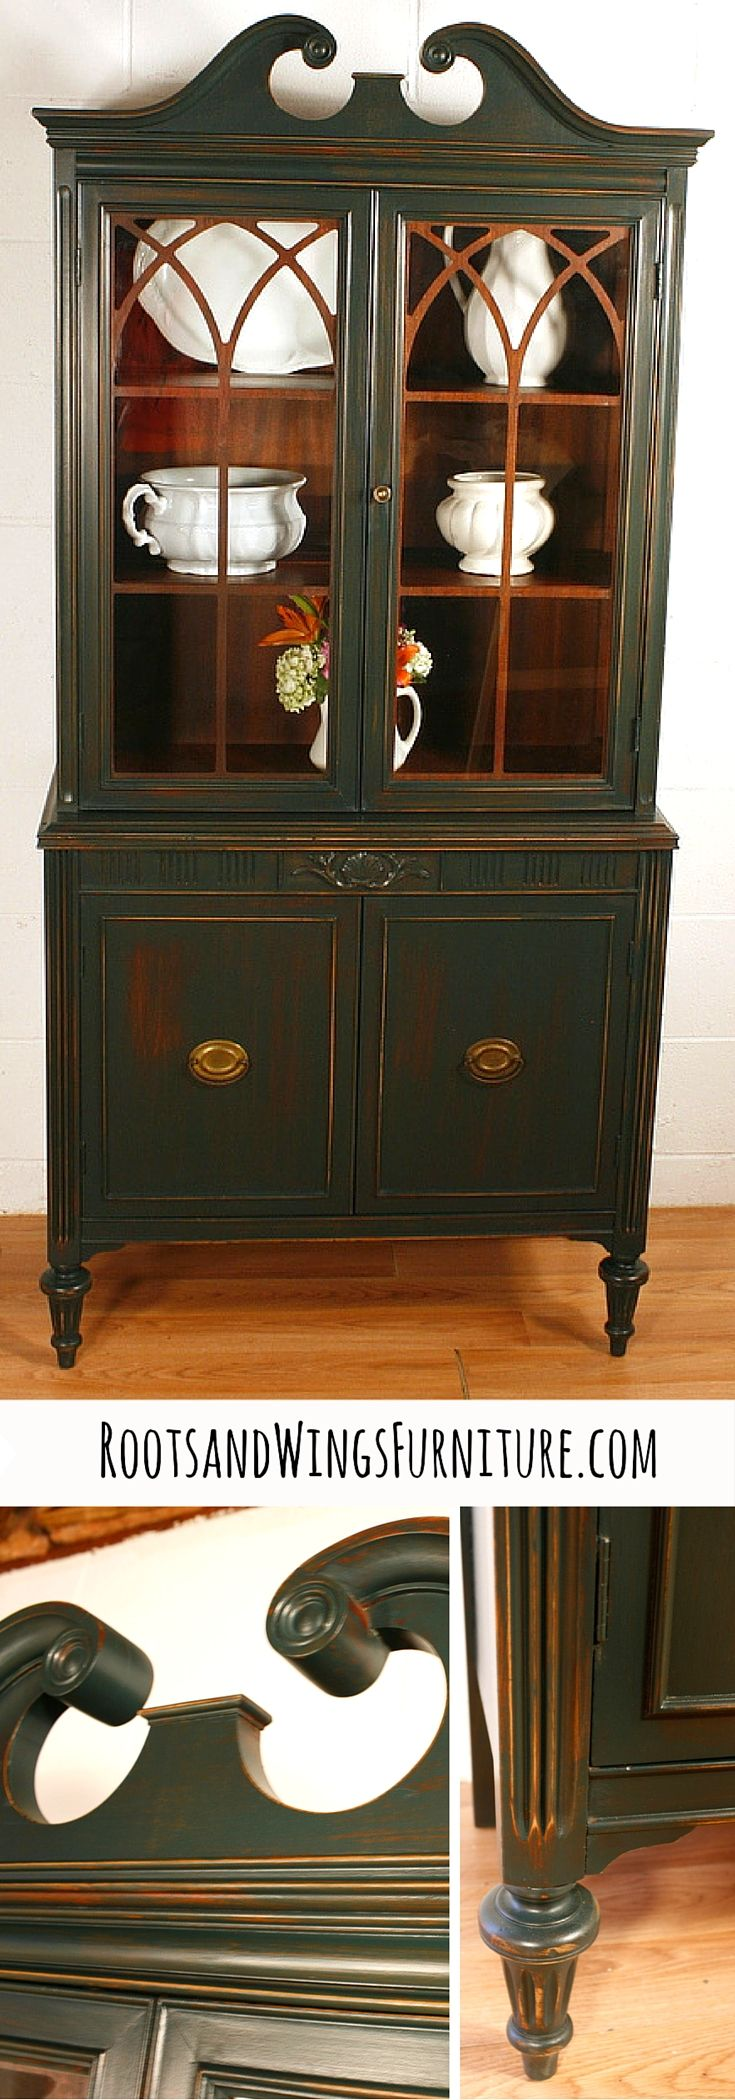 Antique China Cabinet in Hunter Green.